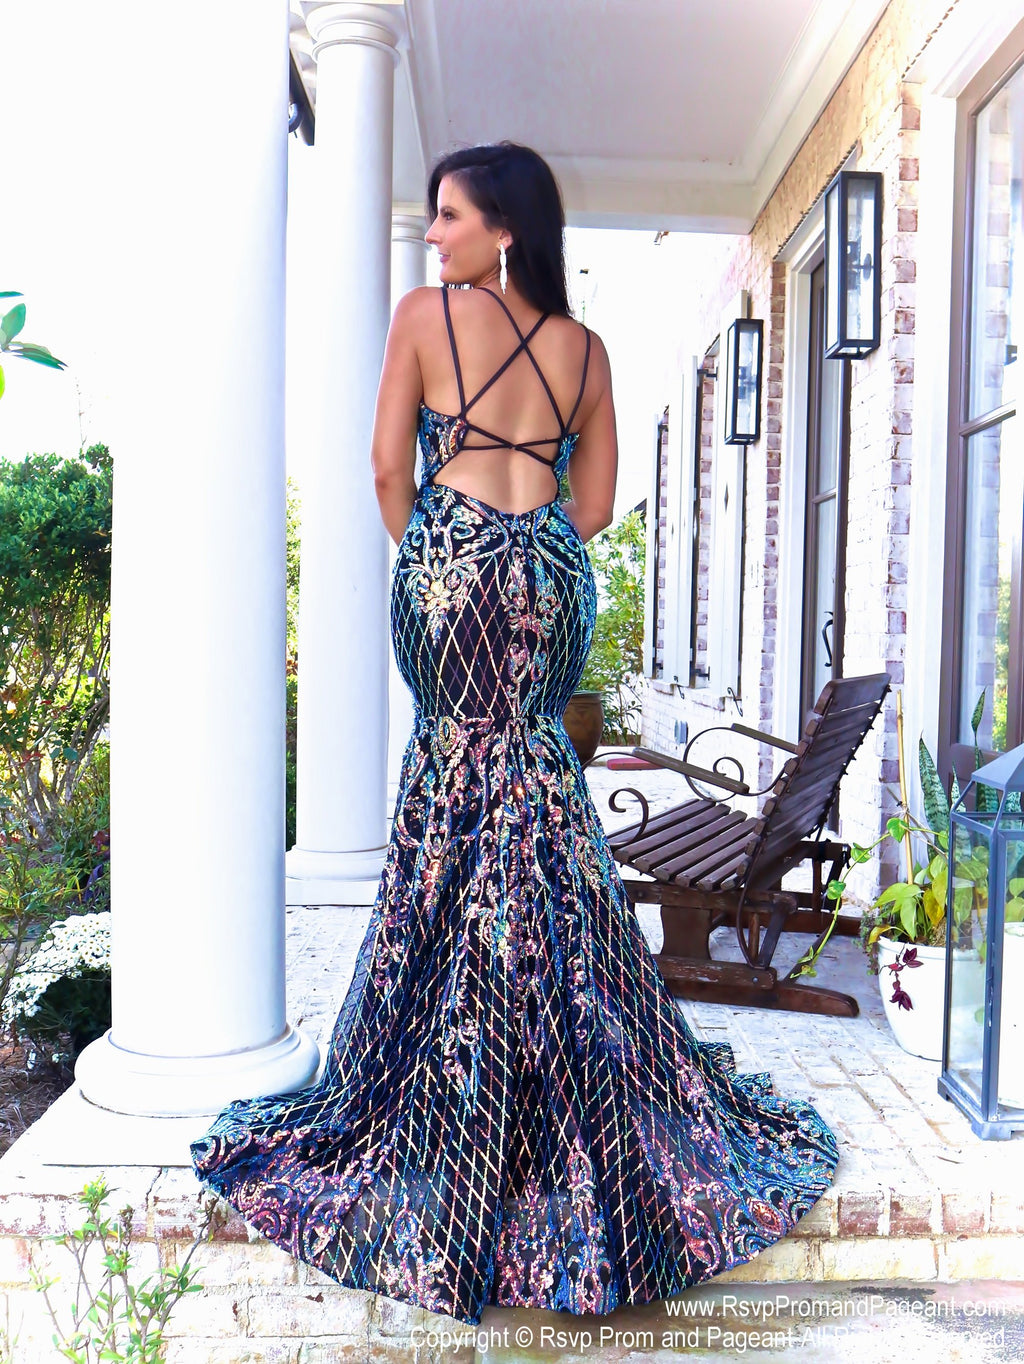 Back of Model in this Iridescent mermaid gown with an open, strappy back and an intricate sequined design which is unlike anything else!! And it's at Rsvp Prom and Pageant, your source for the HOTTEST Prom and Pageant Dresses and Exclusive Evening Gowns and located in Atlanta, Georgia!